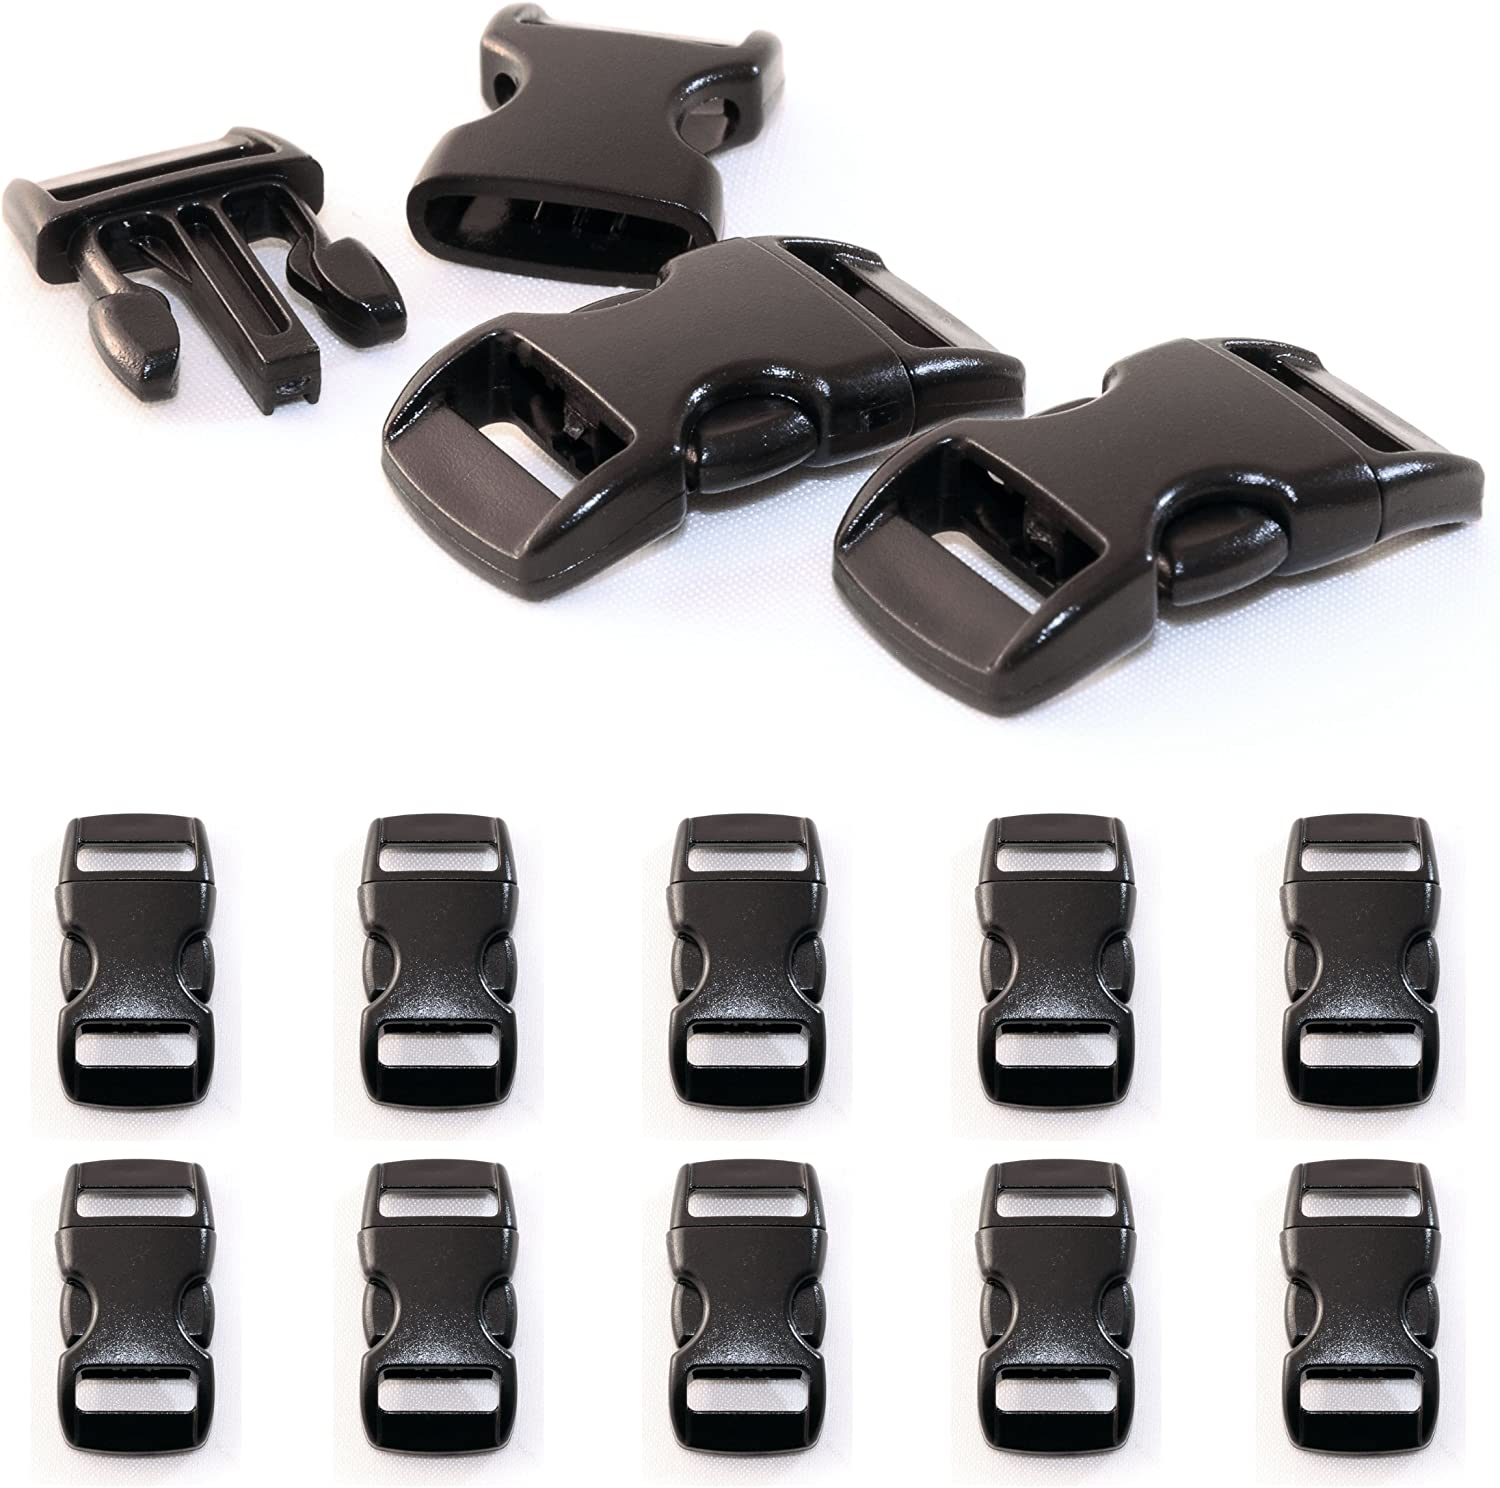 Ganzoo Set of 10 3/8 Inch Click-release Catches / Buckle Clips (Click Buckle) made of Plastic for Paracord Bracelets, Cords etc., 29 mm x 15 mm, Colour: Black by Ganzoo